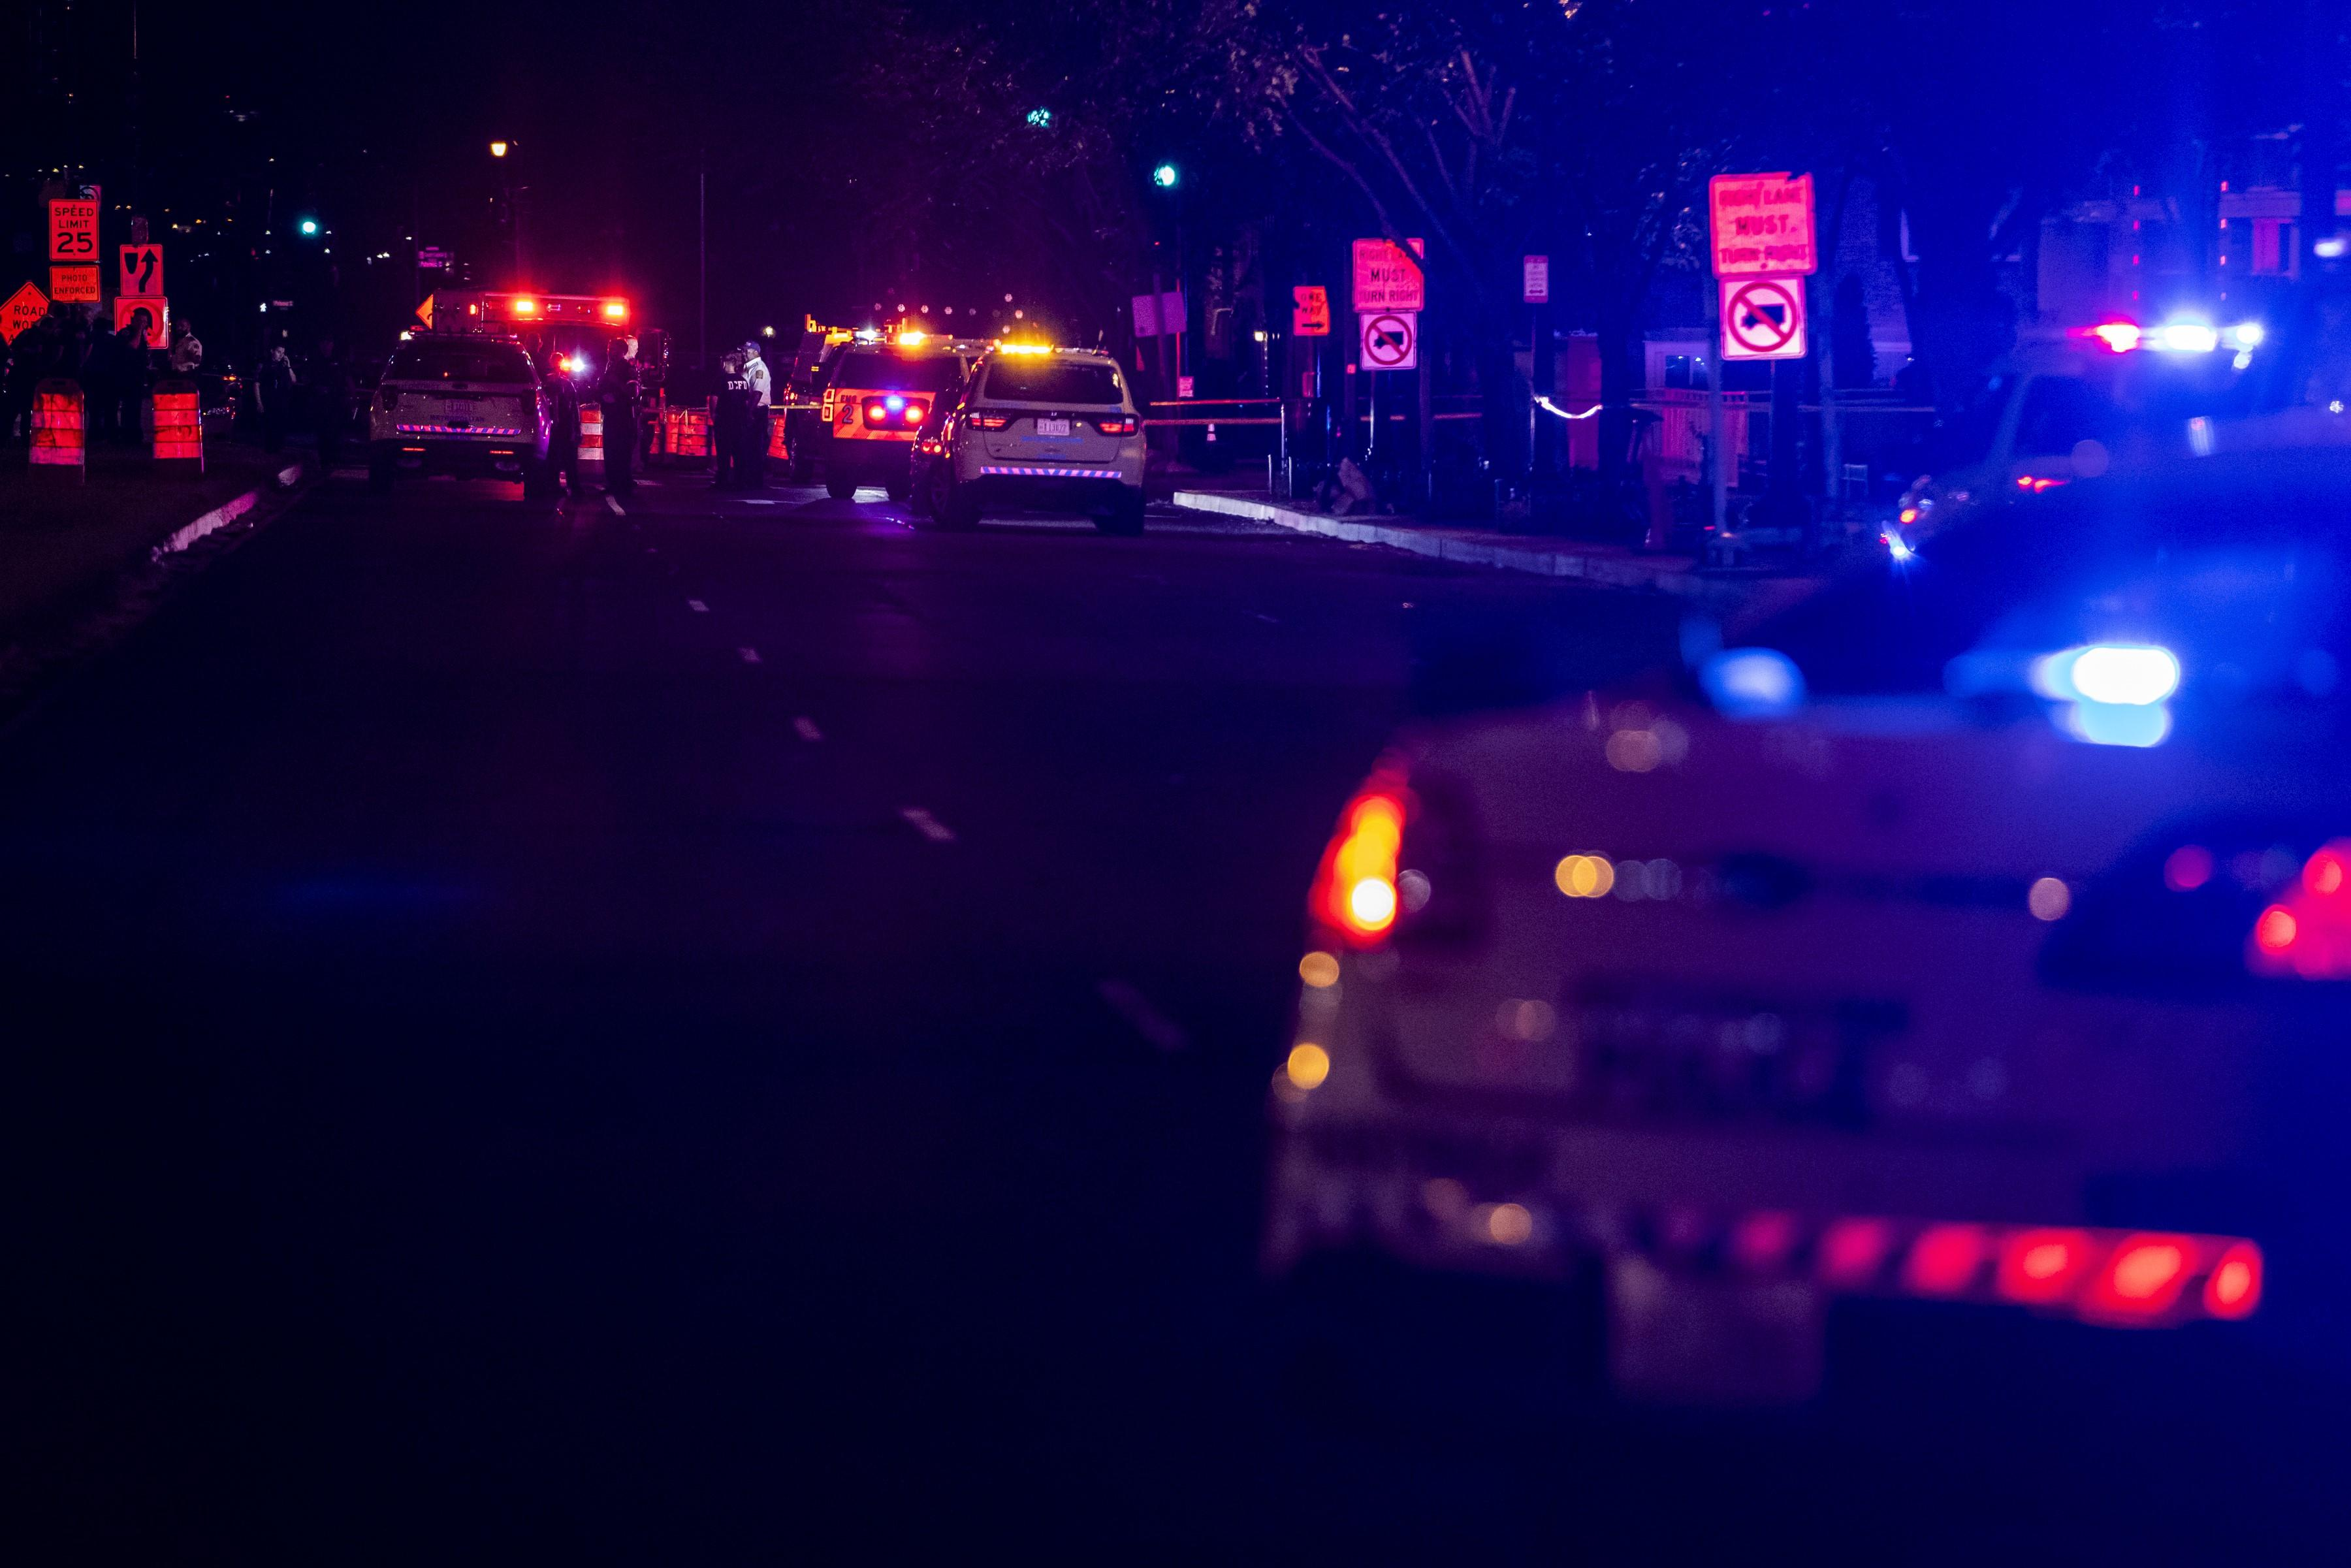 US-SHOOTING-REPORTED-NEAR-NATIONSLS-PARK-IN-WASHINGTON-DC